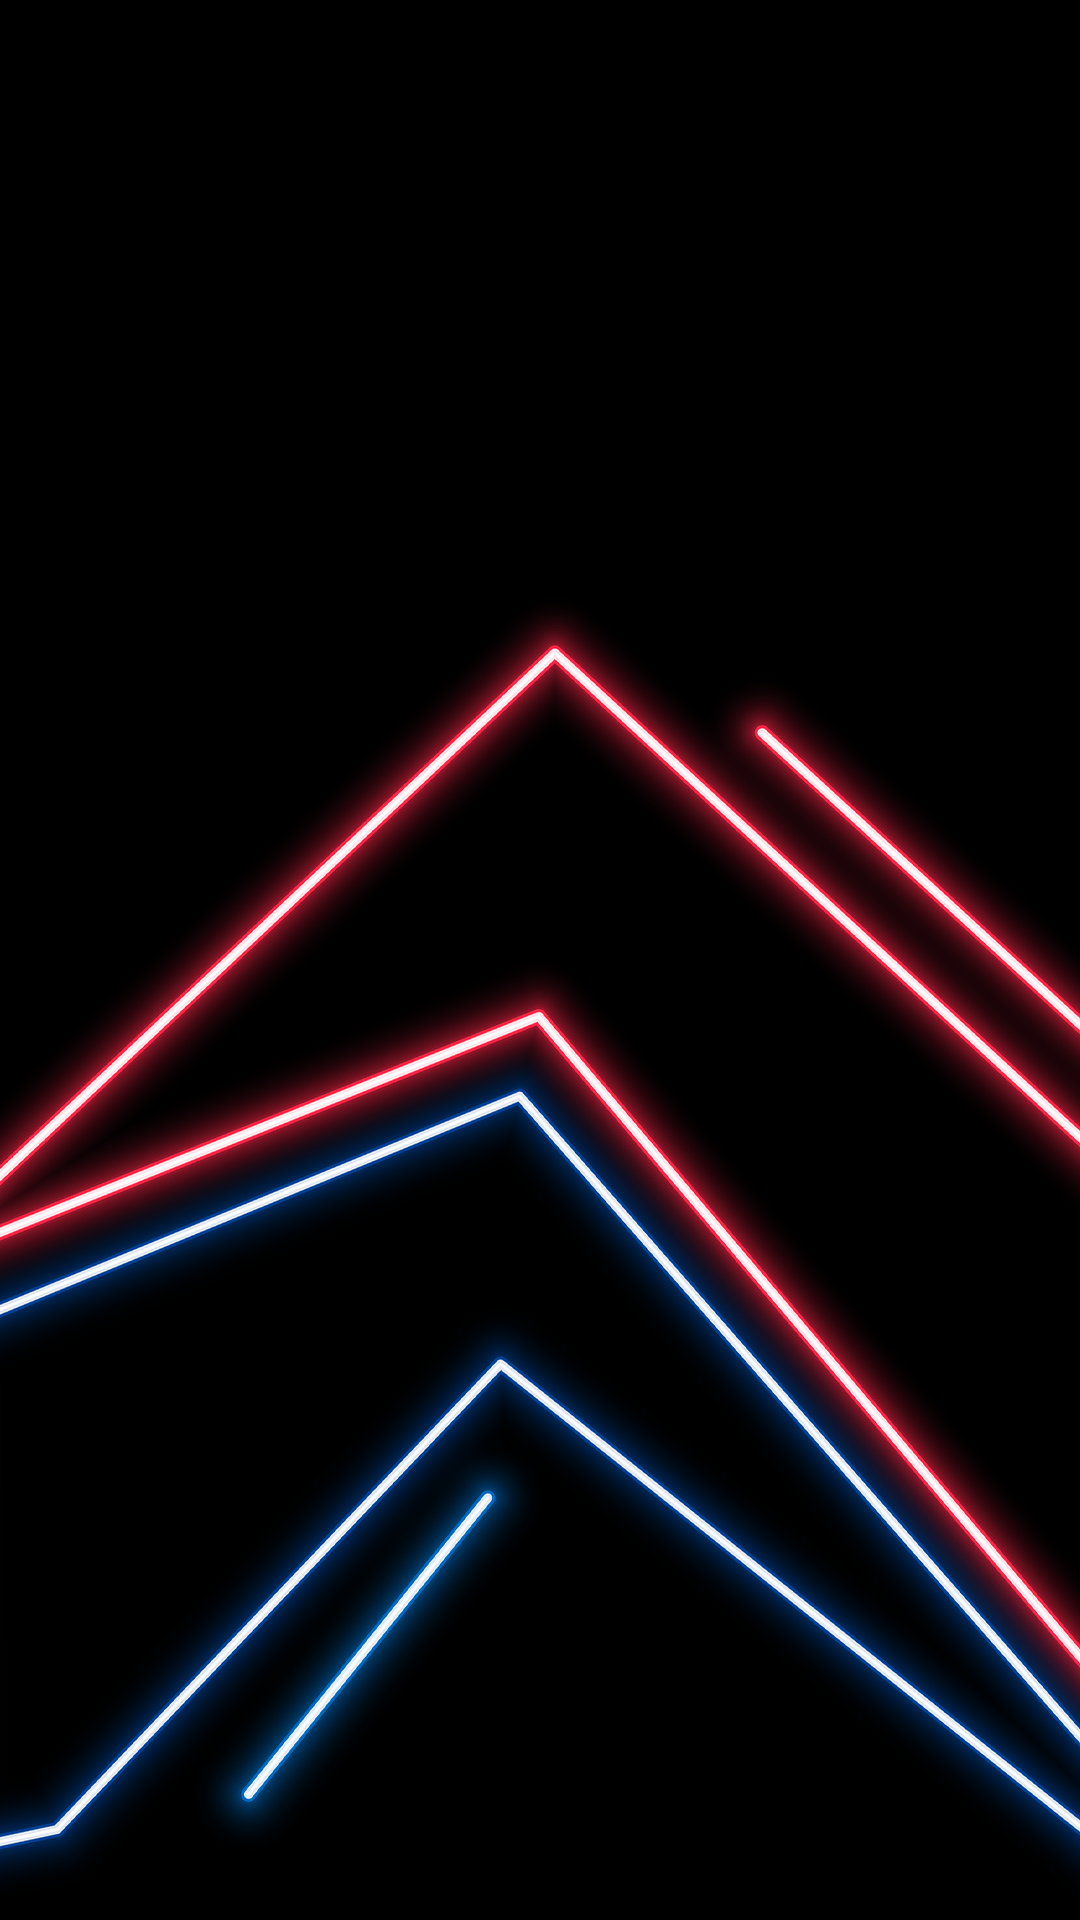 Amoled wallpaper neon lines